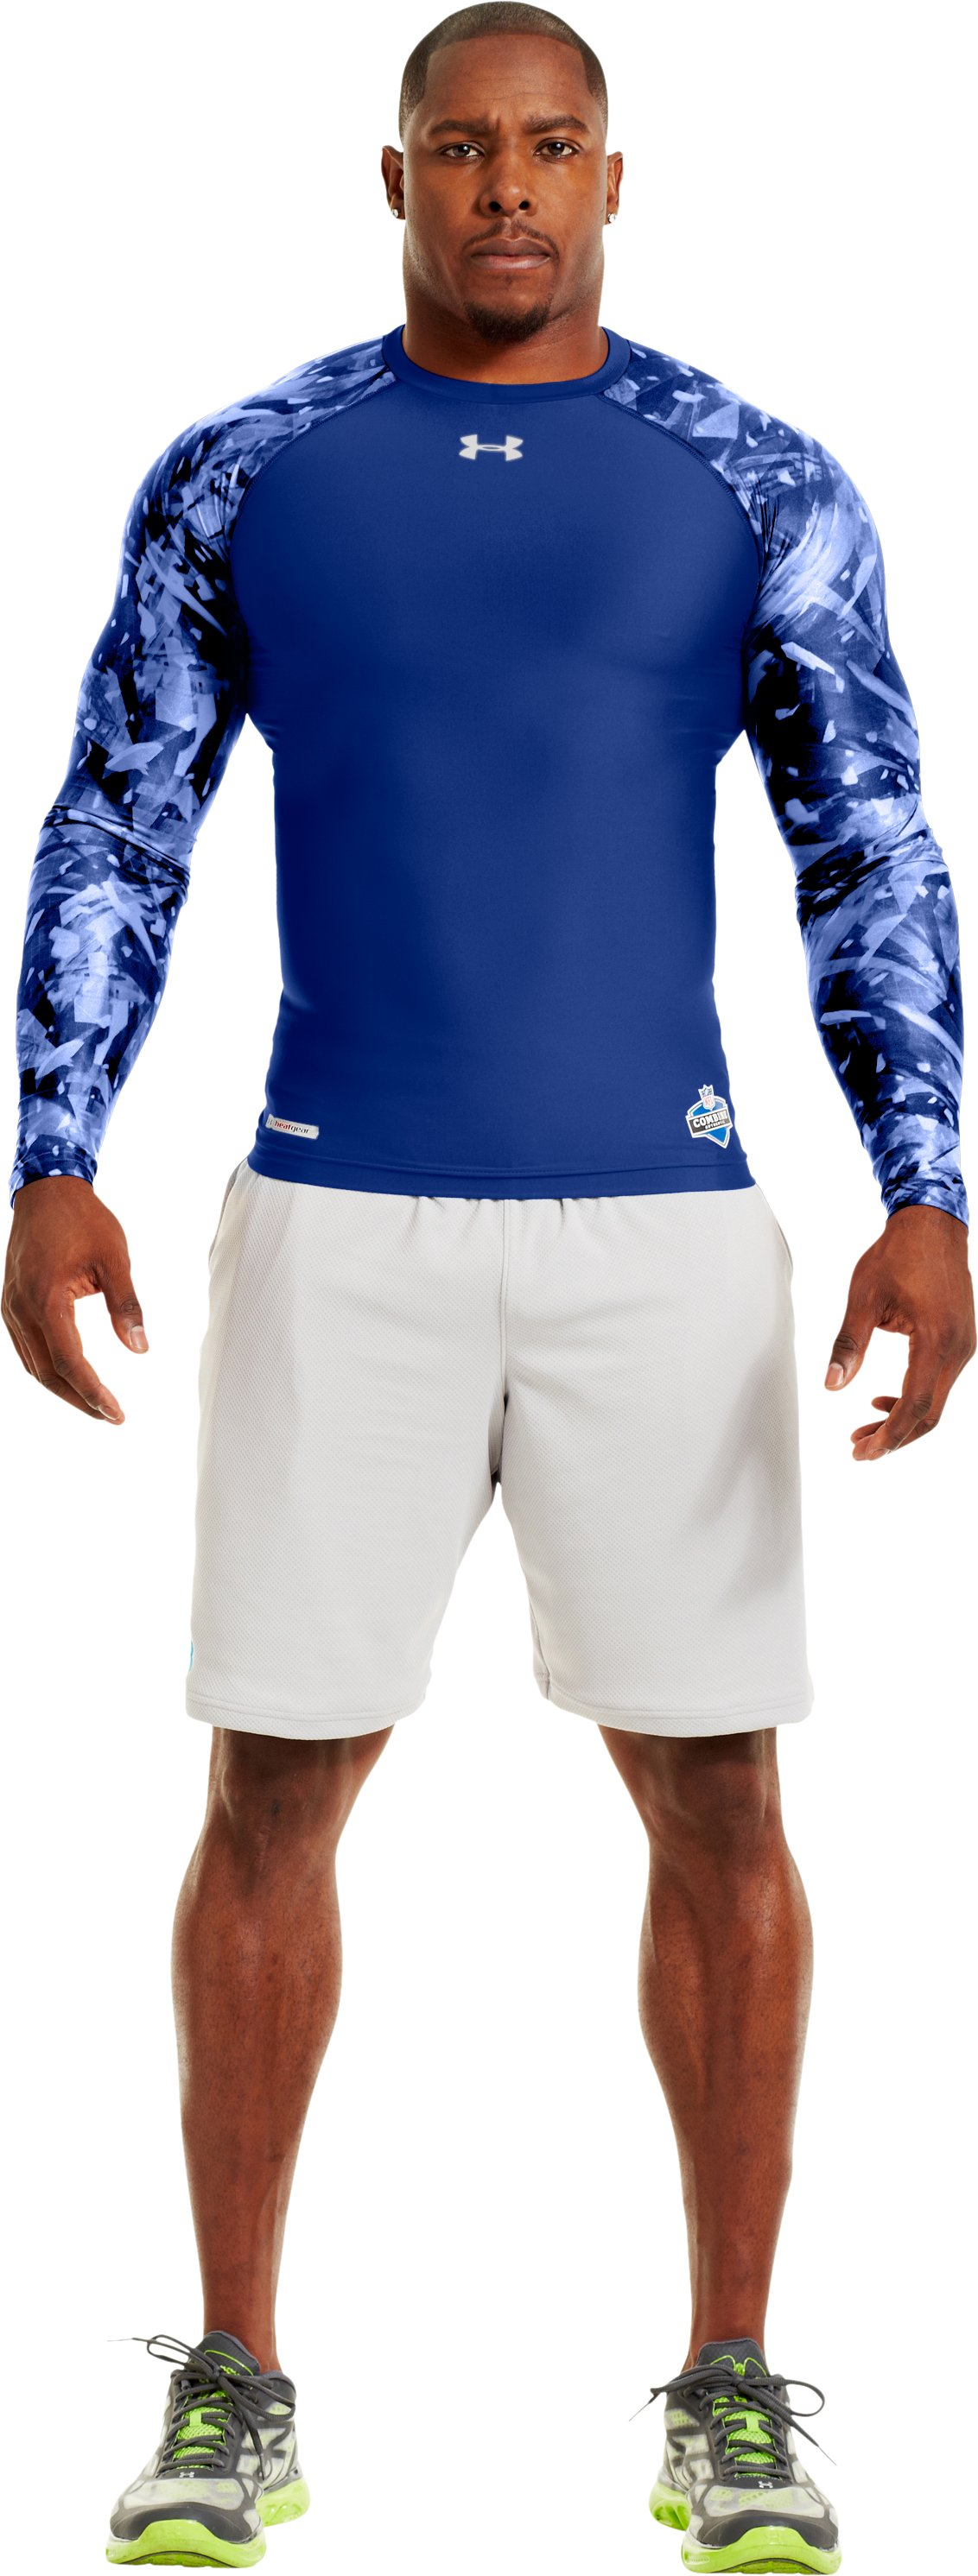 Men's NFL Combine Authentic Compression Long Sleeve, Royal, zoomed image